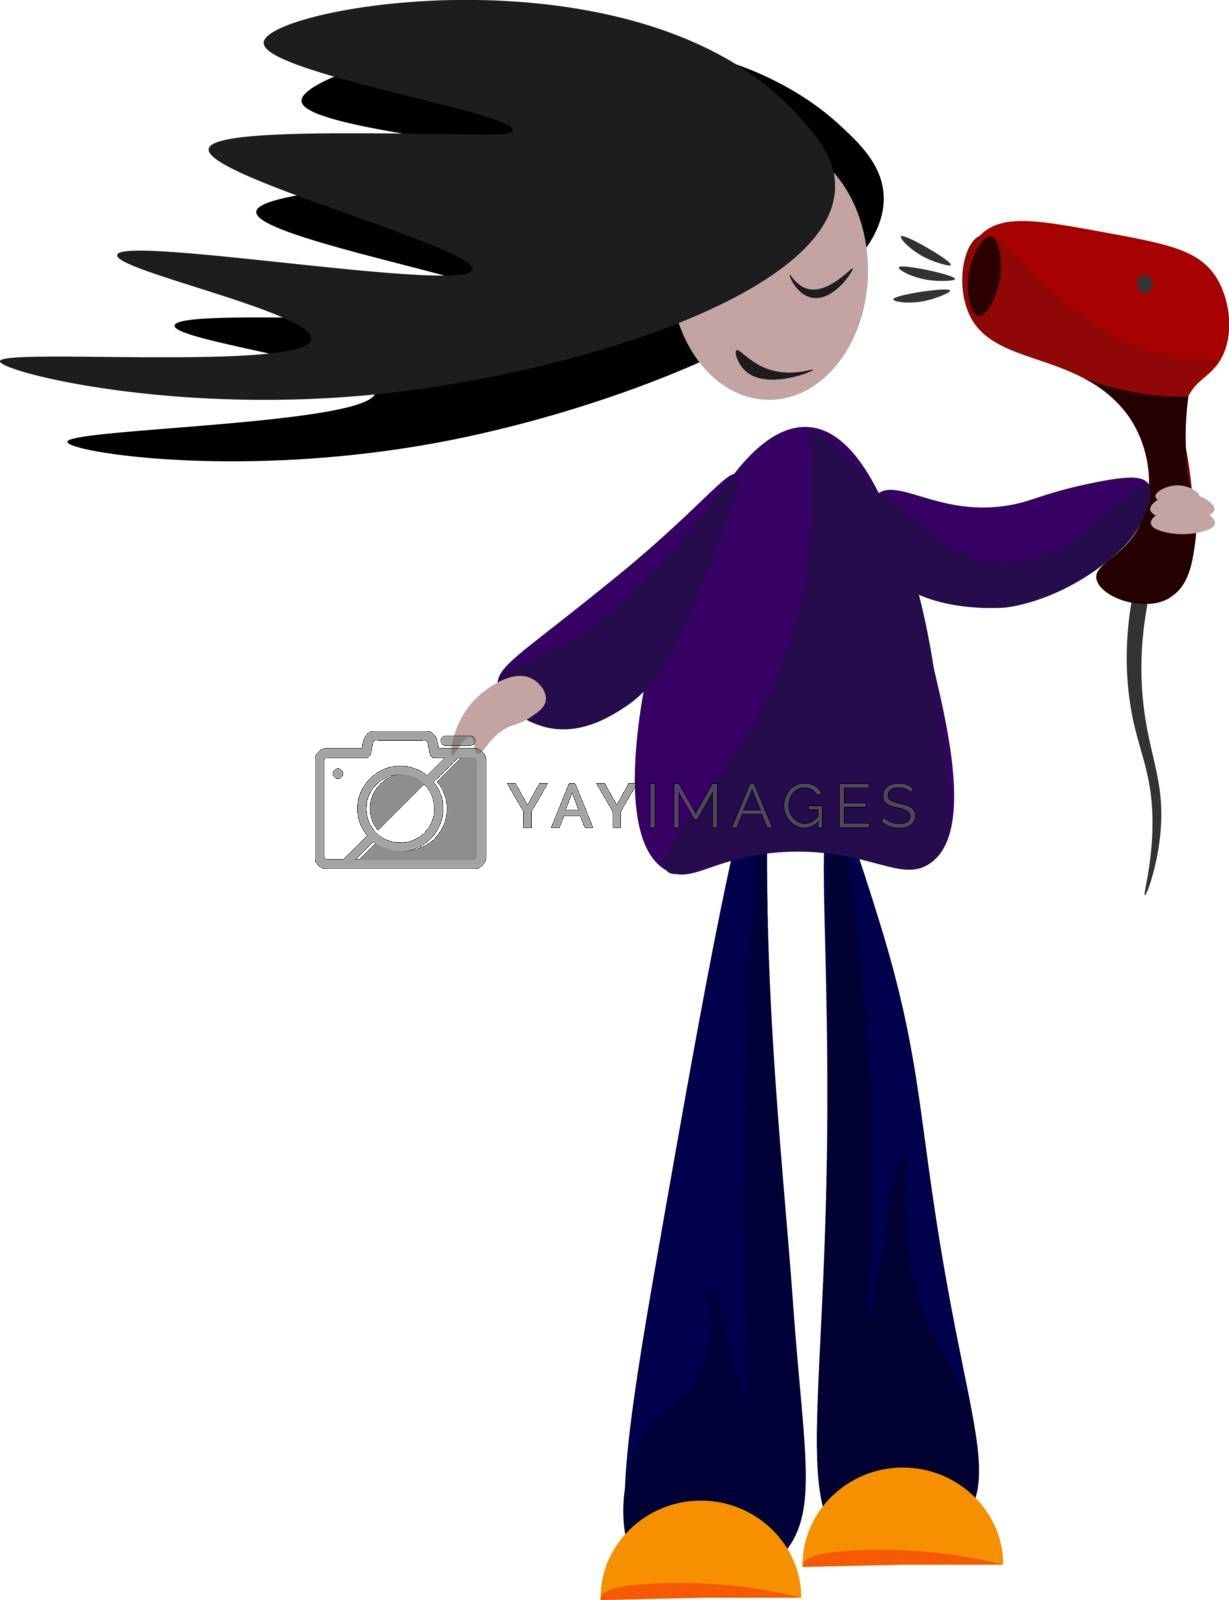 Royalty free image of Clipart of a girl drying her hair with the help of a red-colored by Morphart